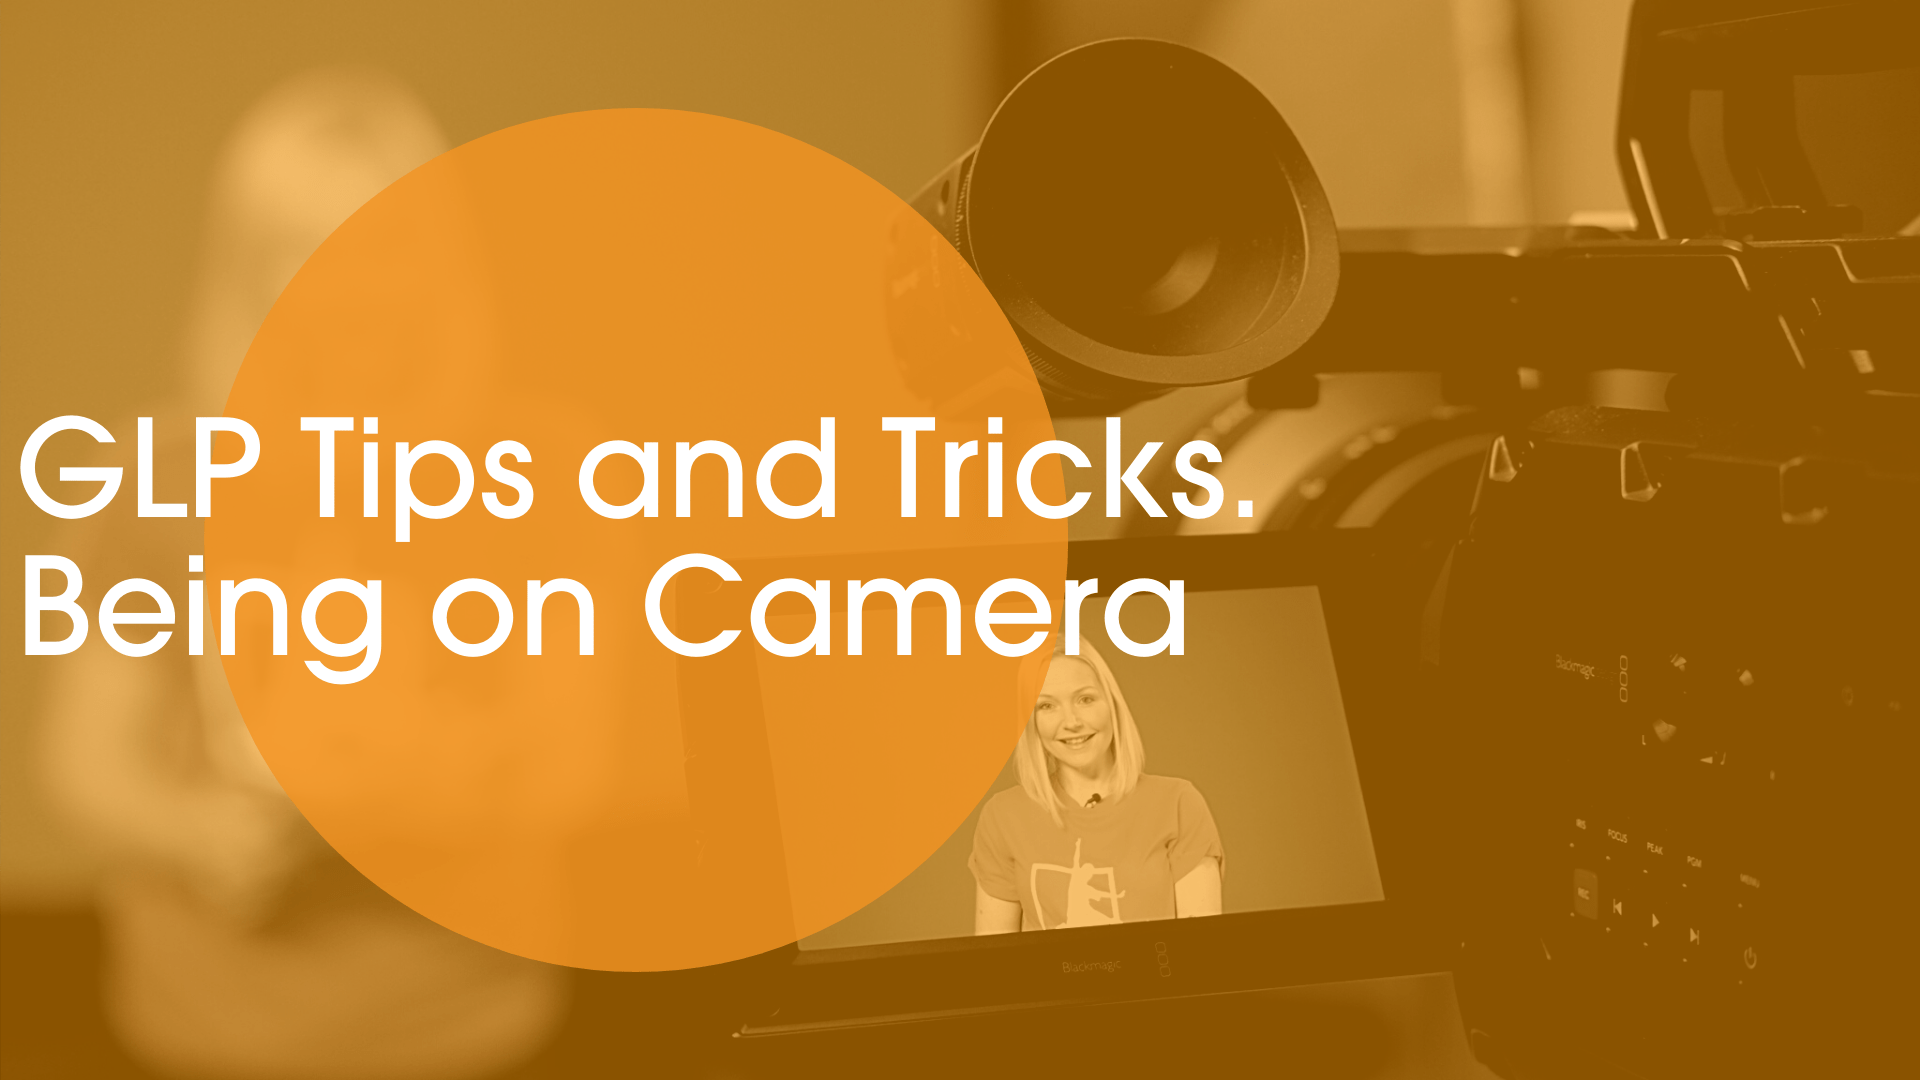 being on camera tips